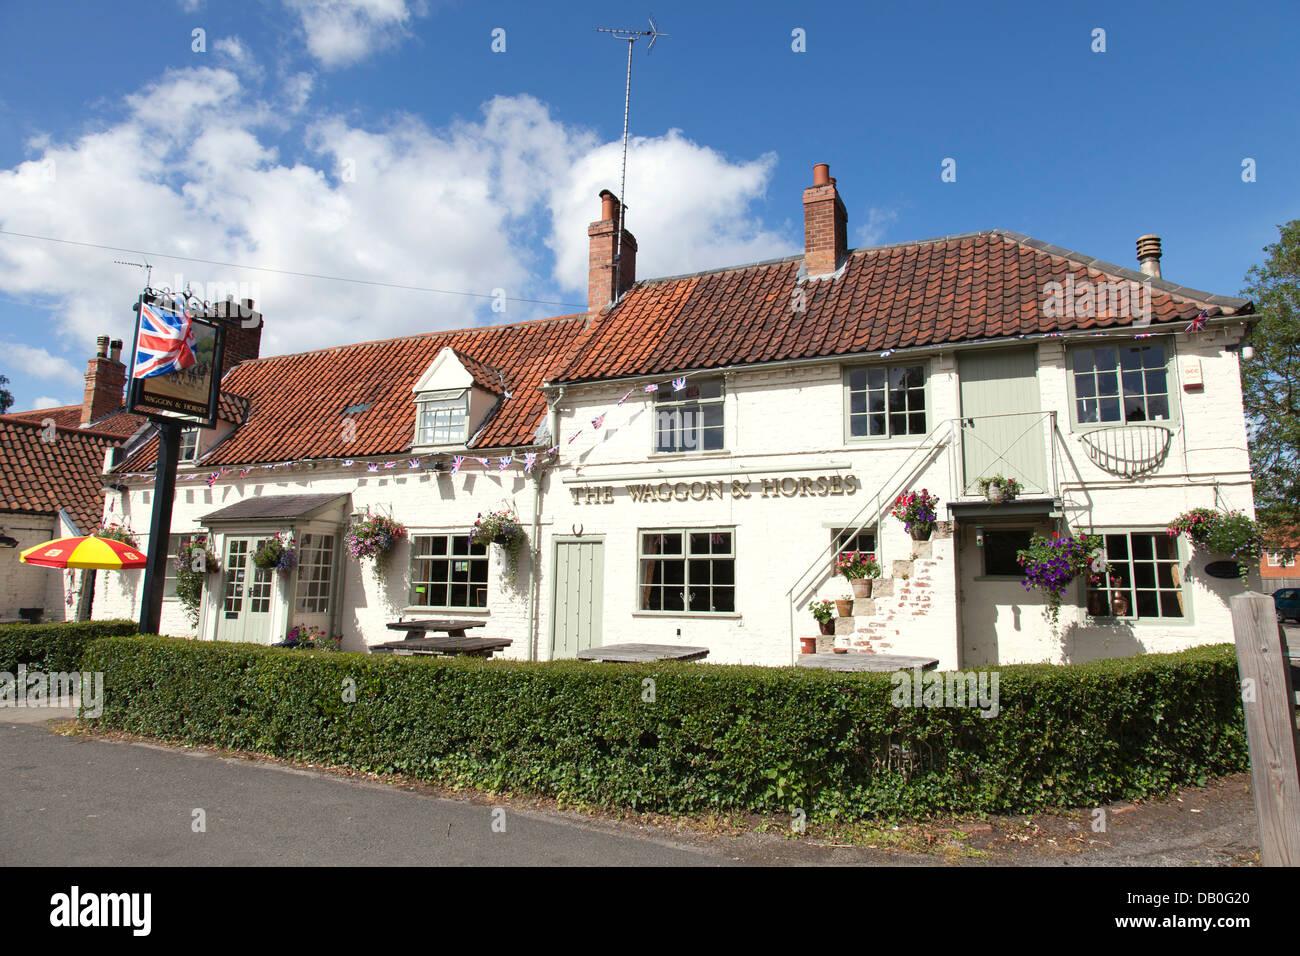 The Waggon & Horses village pub in Bleasby, Nottinghamshire, England, U.K. - Stock Image